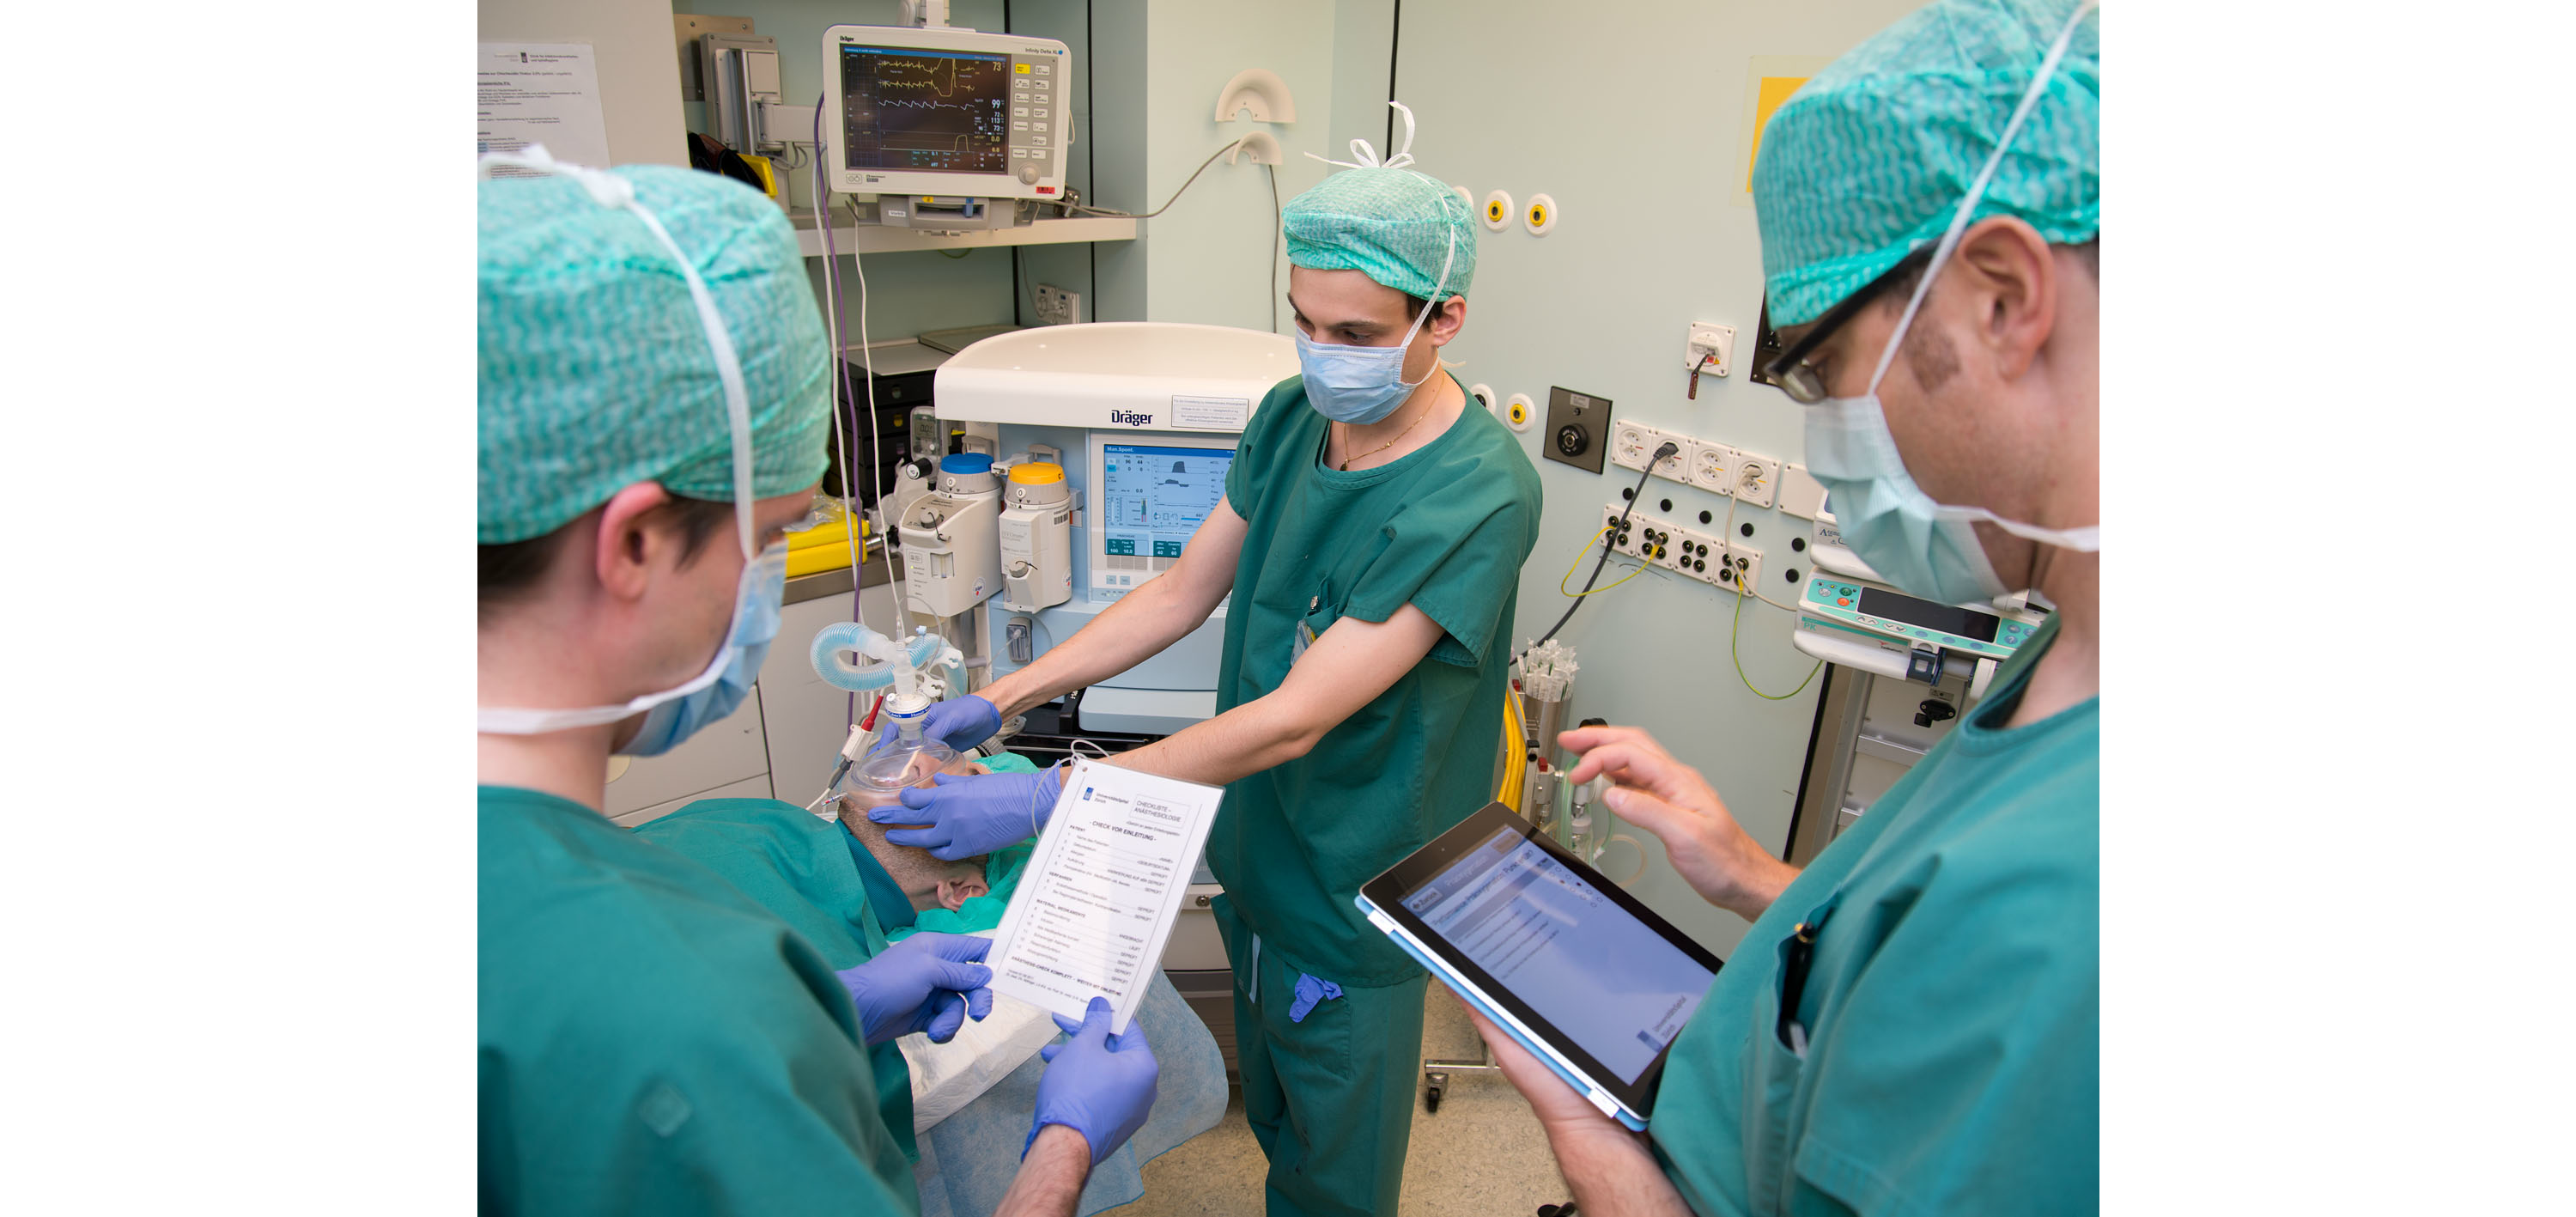 operating room observation paper Those(leveraged(by(clinical(departments(such(as(the(operating(room)shouldbeclosely monitored((many(times,(these observation(of(national(leading(practice.